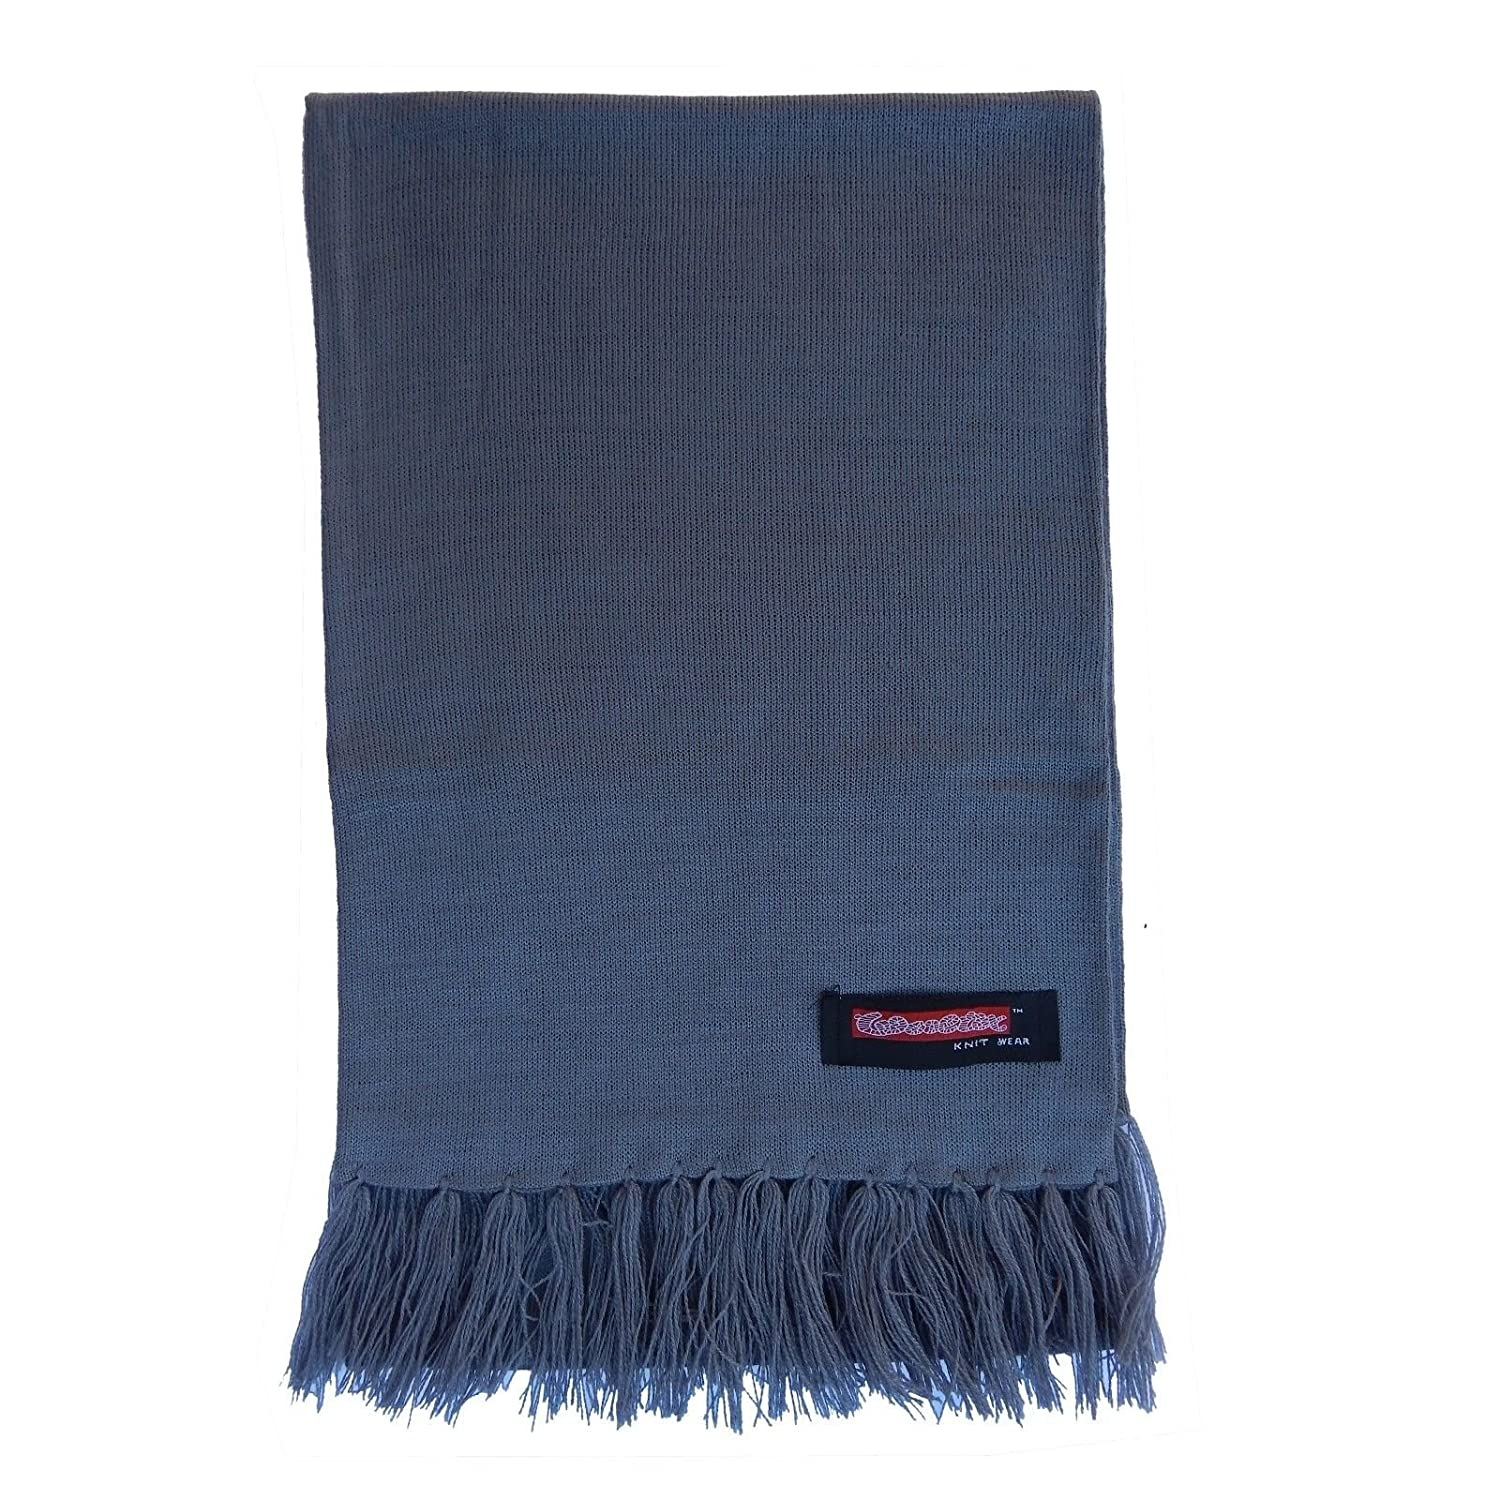 ARD CHAMPS Unisex 12X 72 New 100/% soft Solid Plain Pashmina Cashmere Scarf Warm Wool